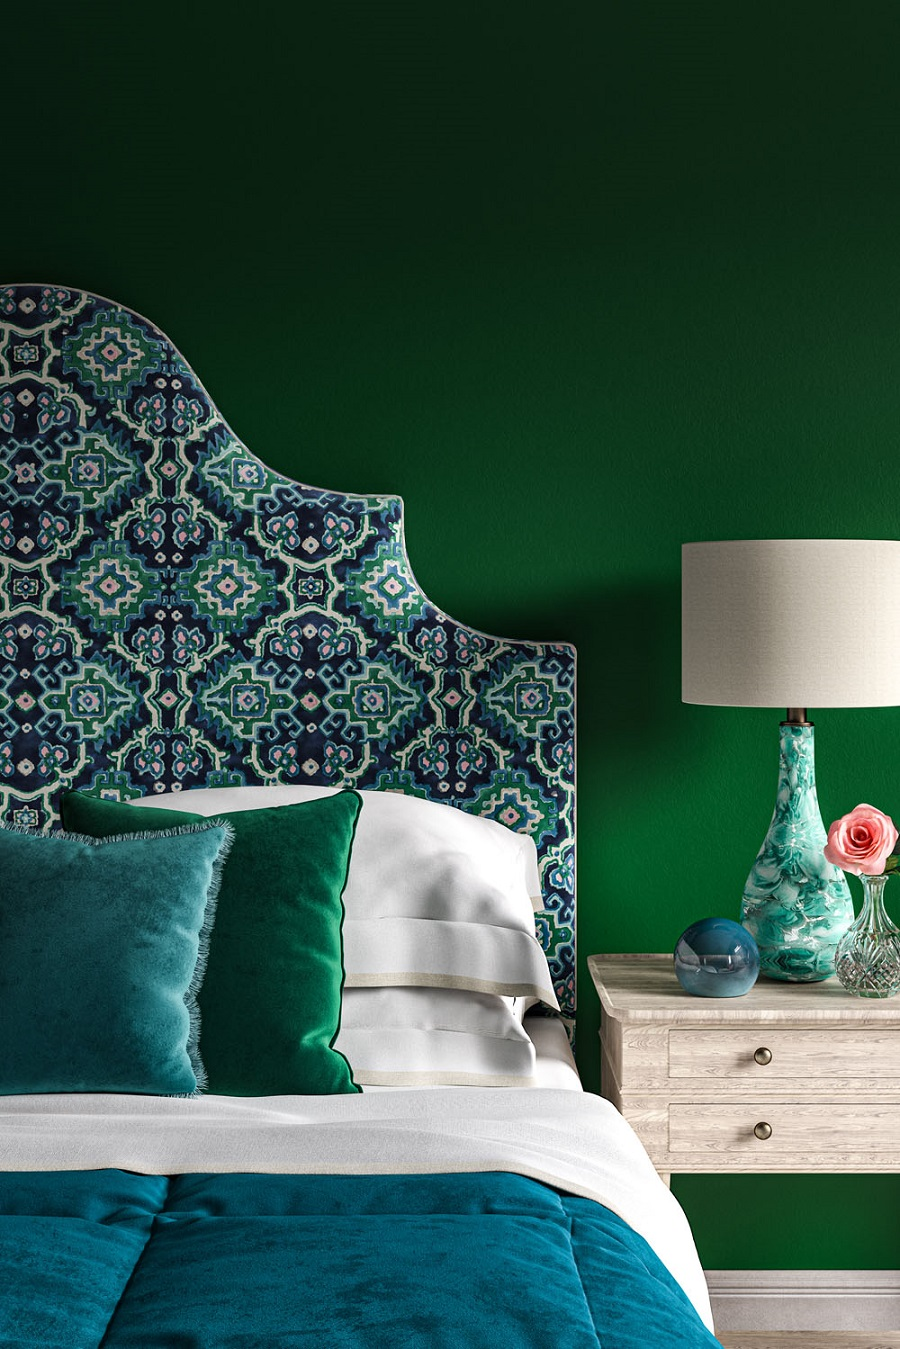 A Striking Bedroom in Green and Teal With a Fabulous Headboard